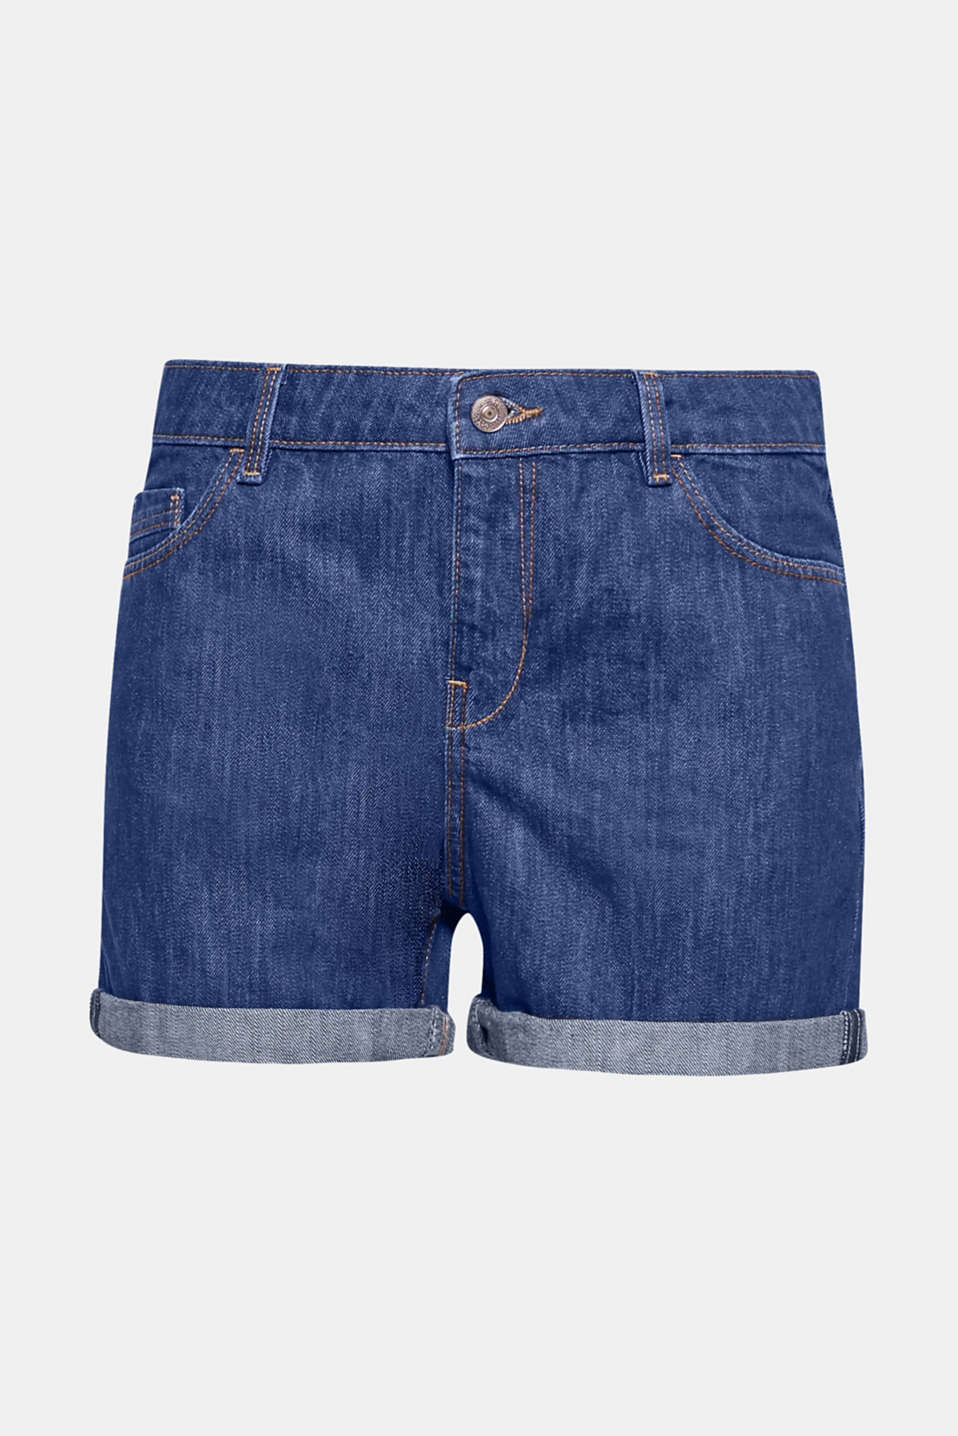 Dein Must-Have-Essential für coole Sommer-Looks! Bequeme Denim Shorts aus reiner Baumwolle mit variablen Roll-up-Säumen.